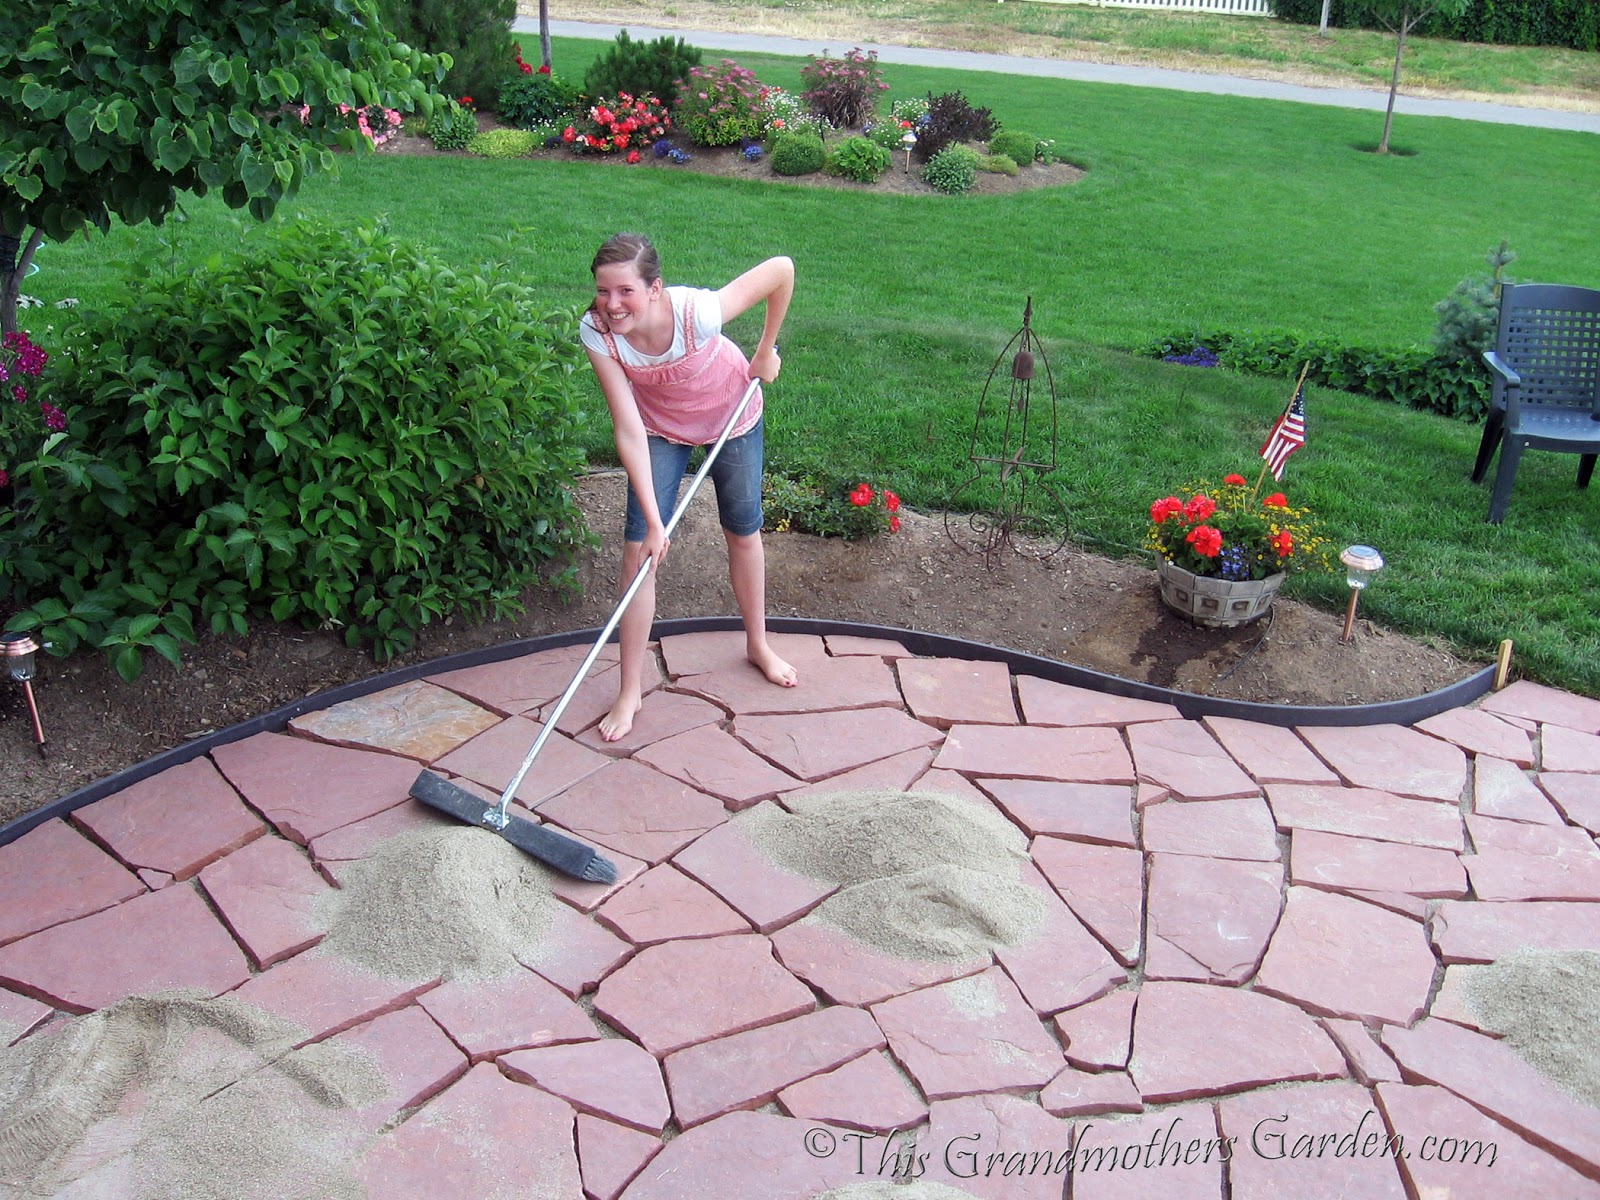 Superb Filling In The Gaps: Part 3 Of Our DIY Flagstone Patio